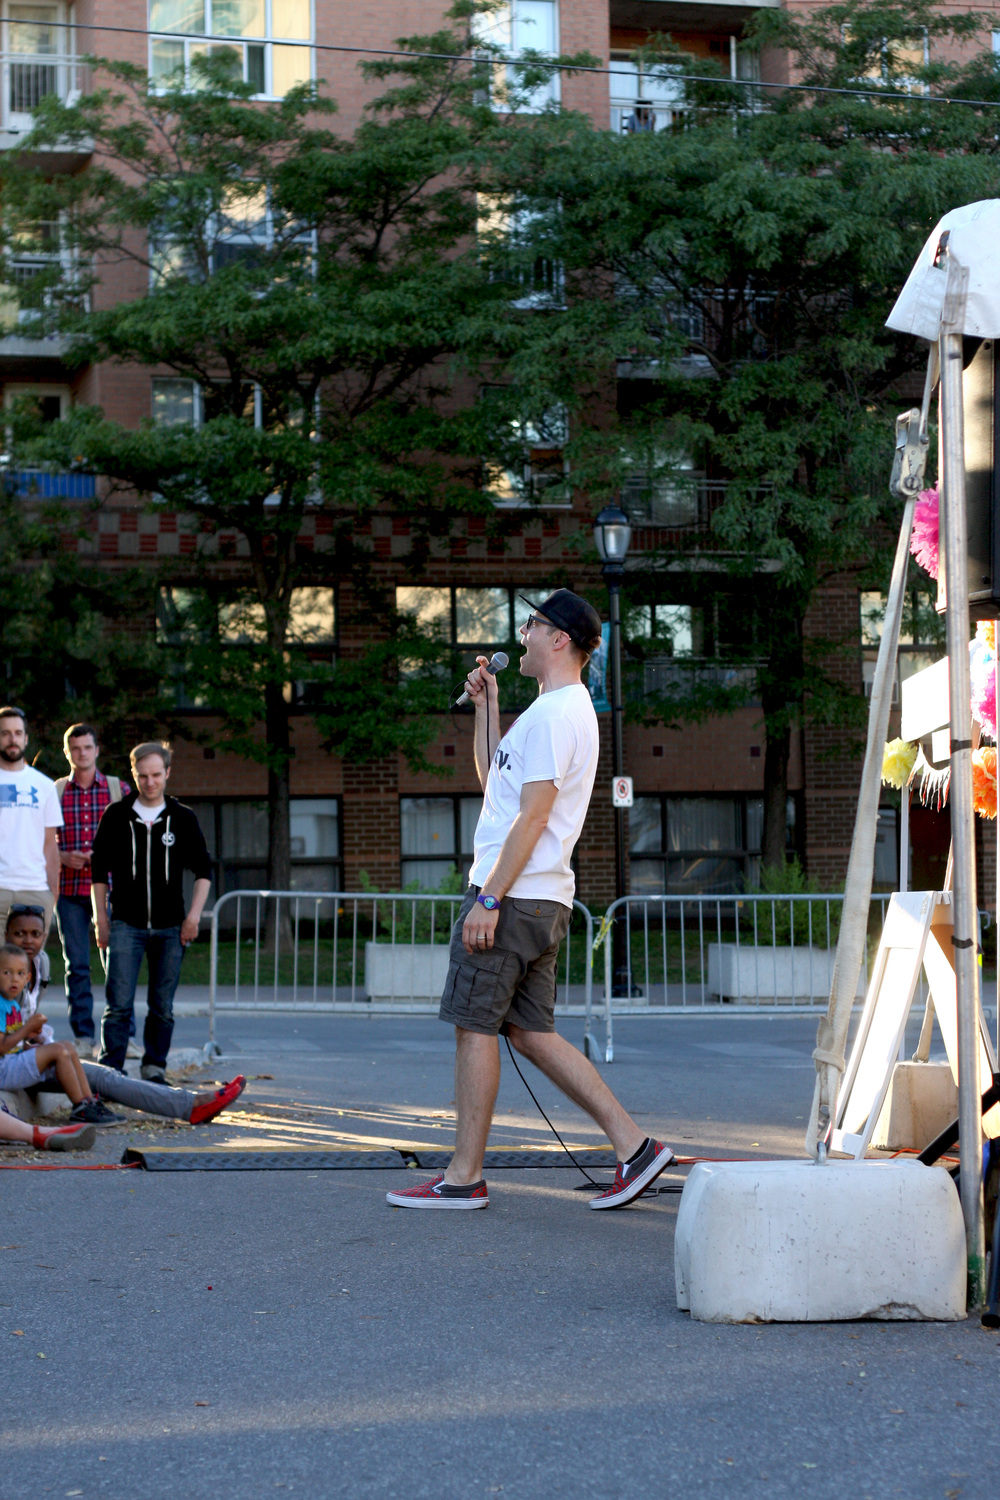 Peter Joynt Hintonburg Happening - Pic by Michael Napiorkowski